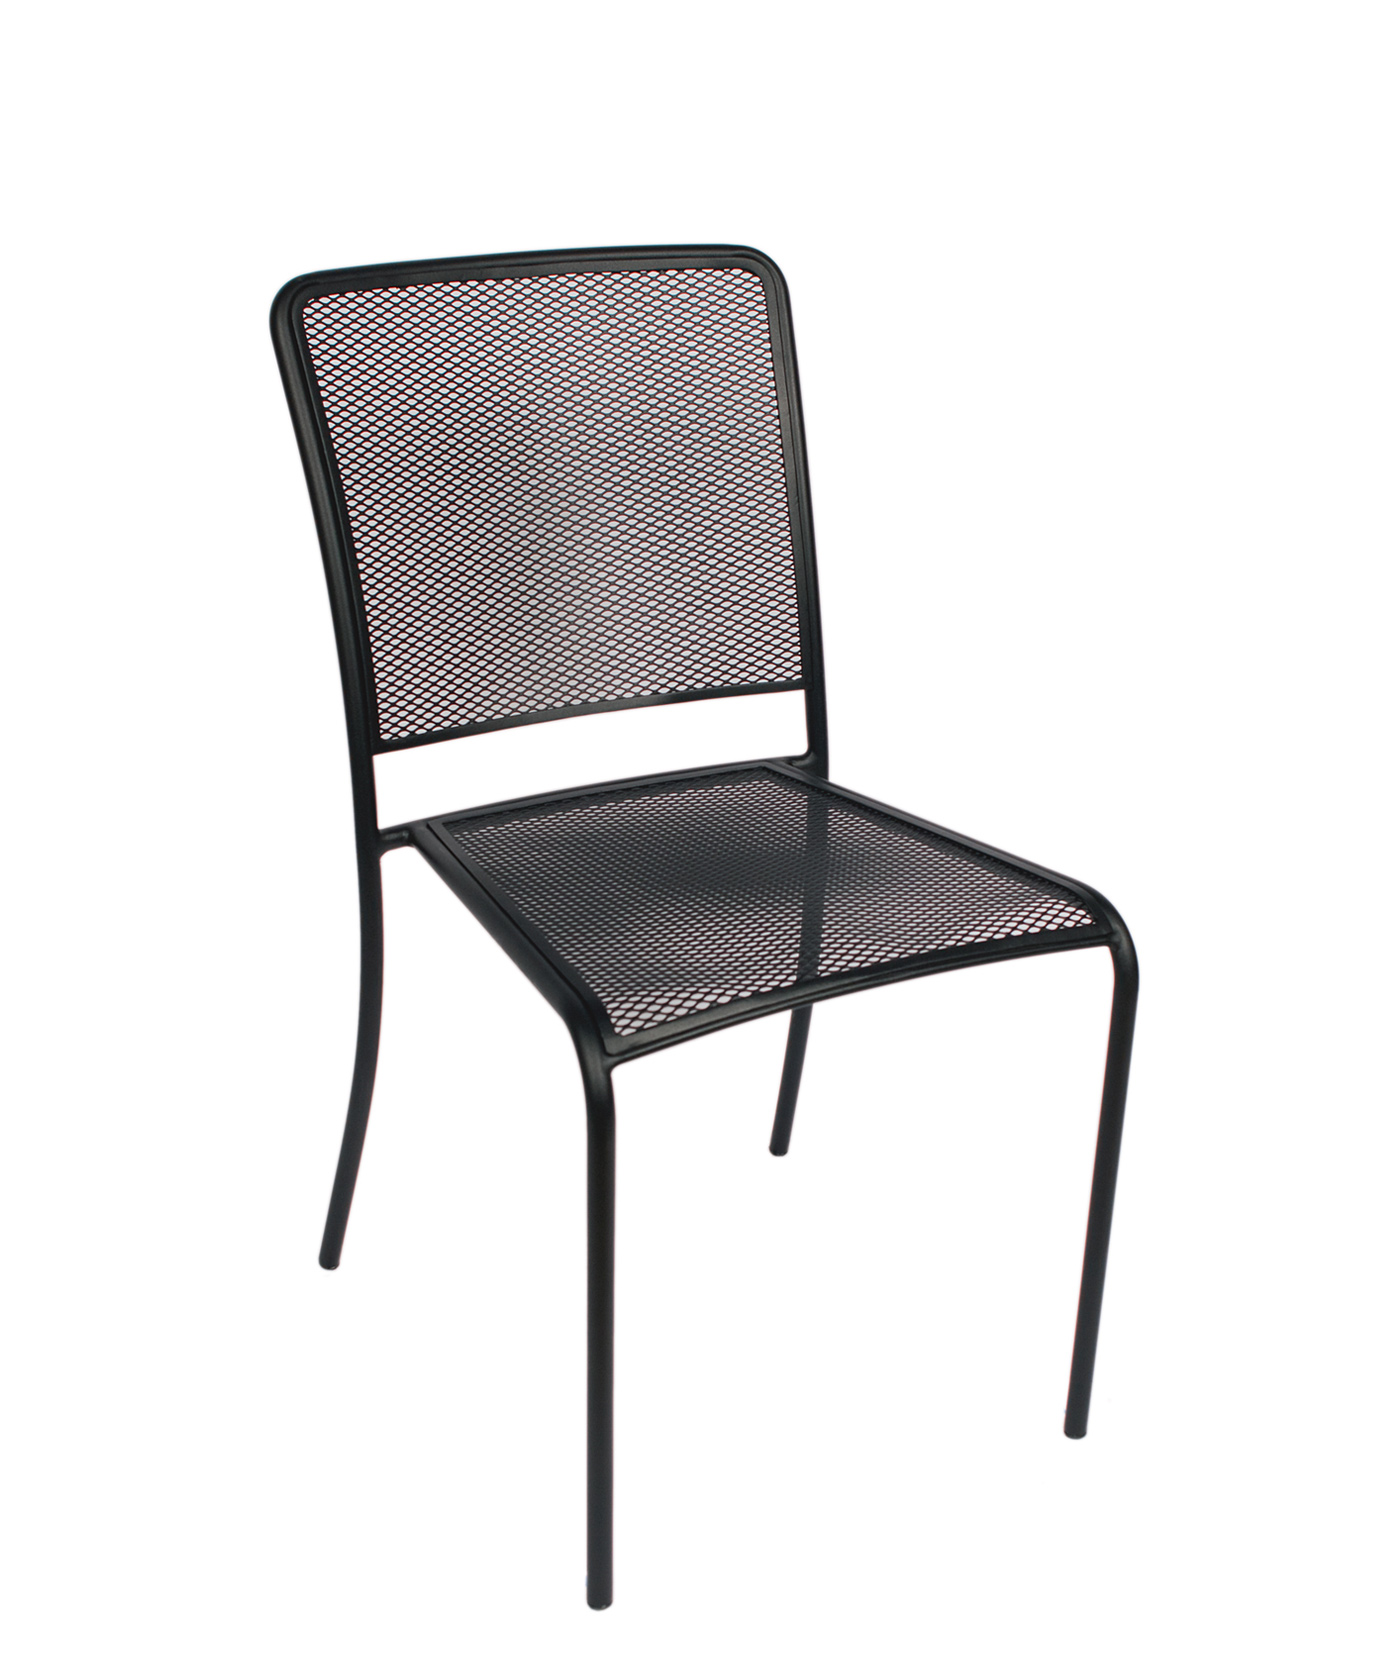 Chesapeake Outdoor Side Chair Micro Mesh Seat Amp Back